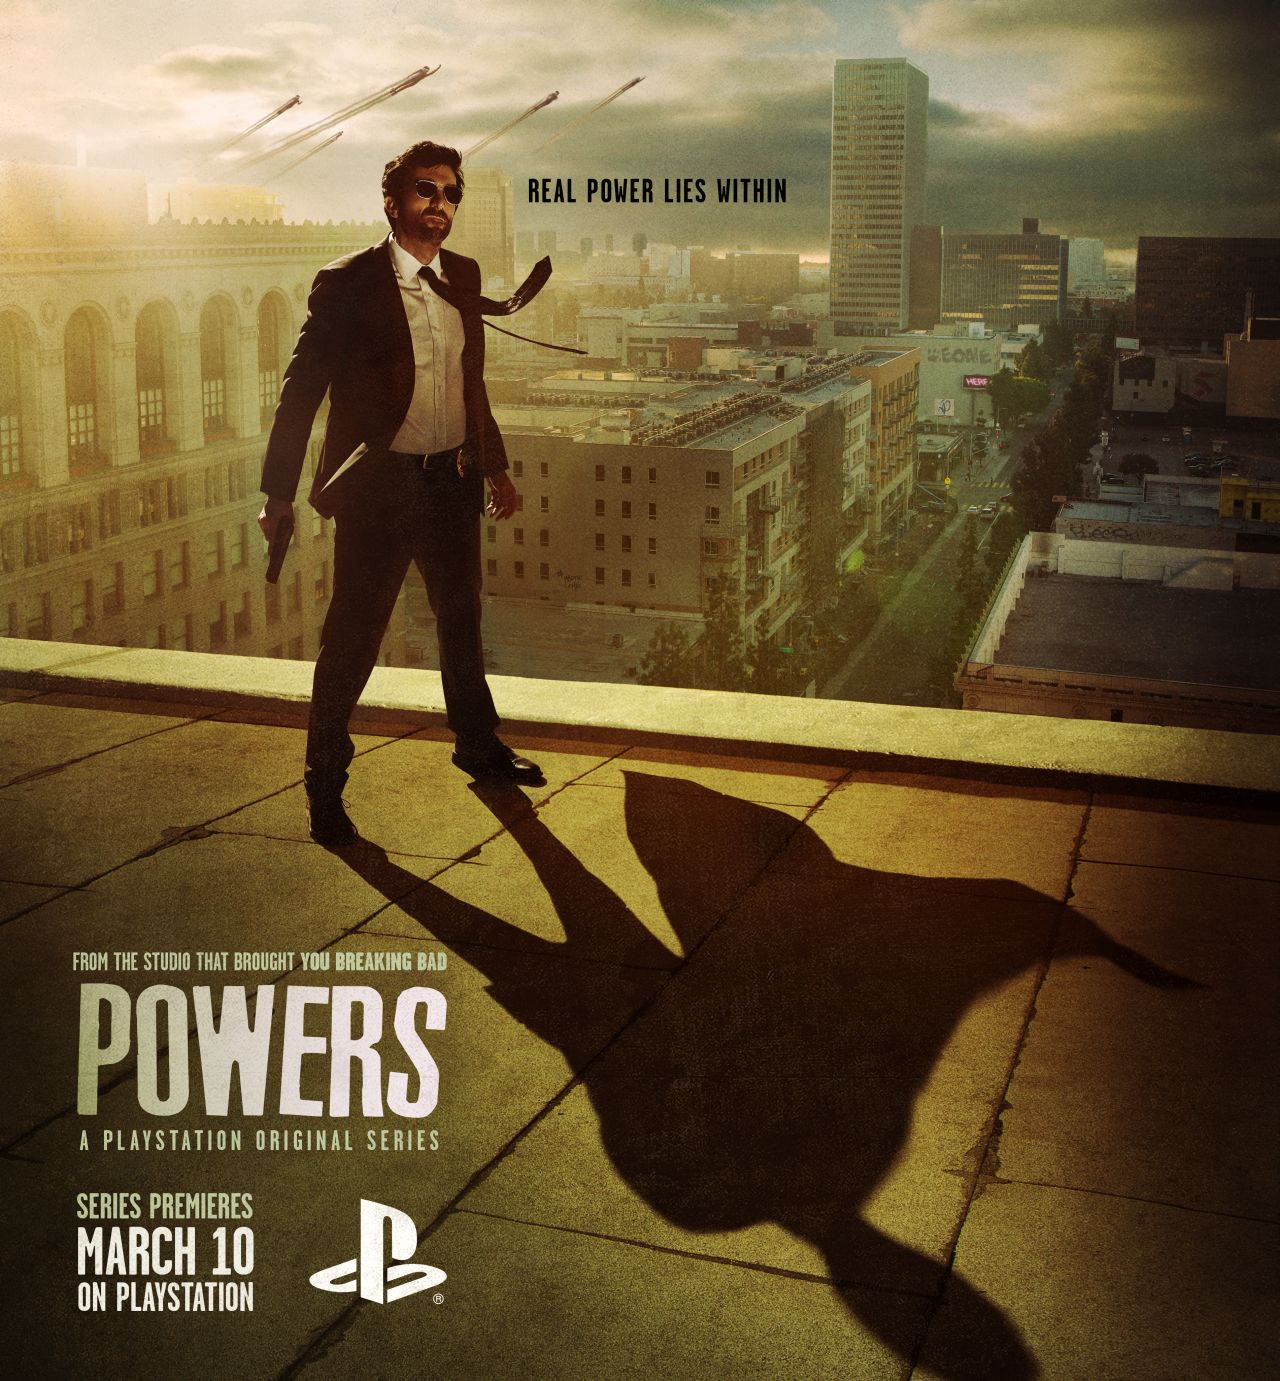 powers-promo-iamge